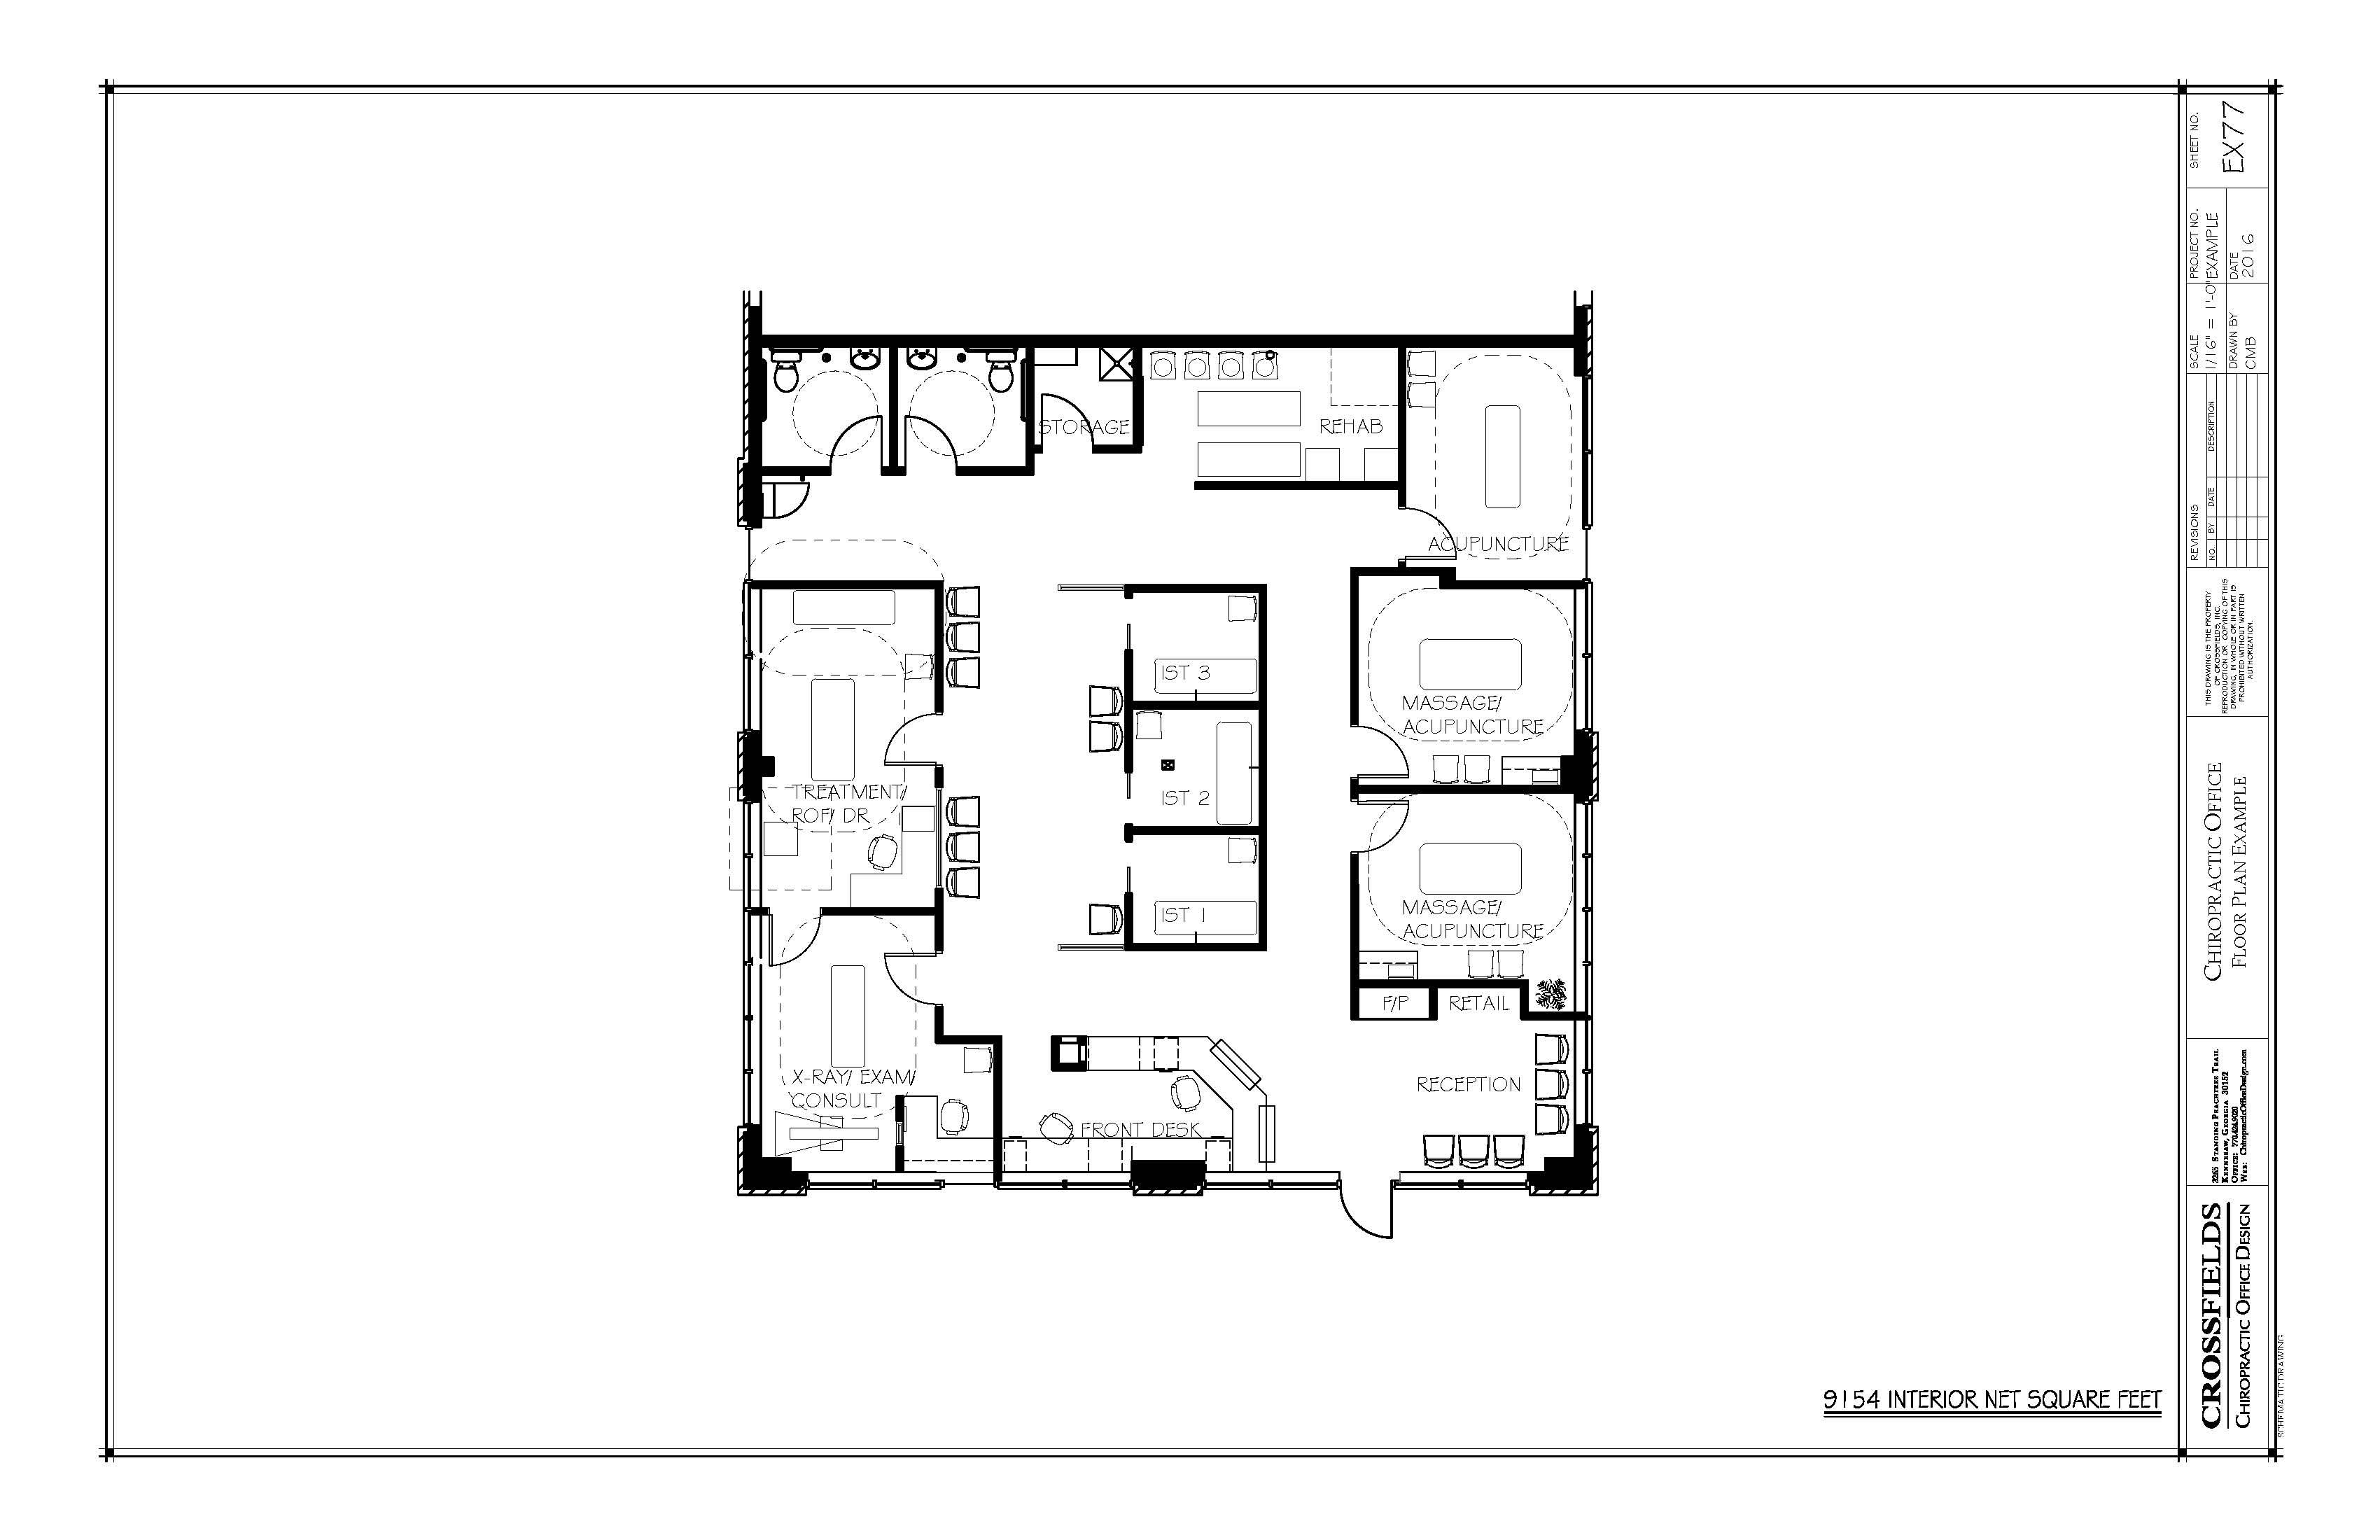 Chiropractic Office Floor Plans Versatile Medical Office Layouts Office Floor Plan Floor Plans Office Floor